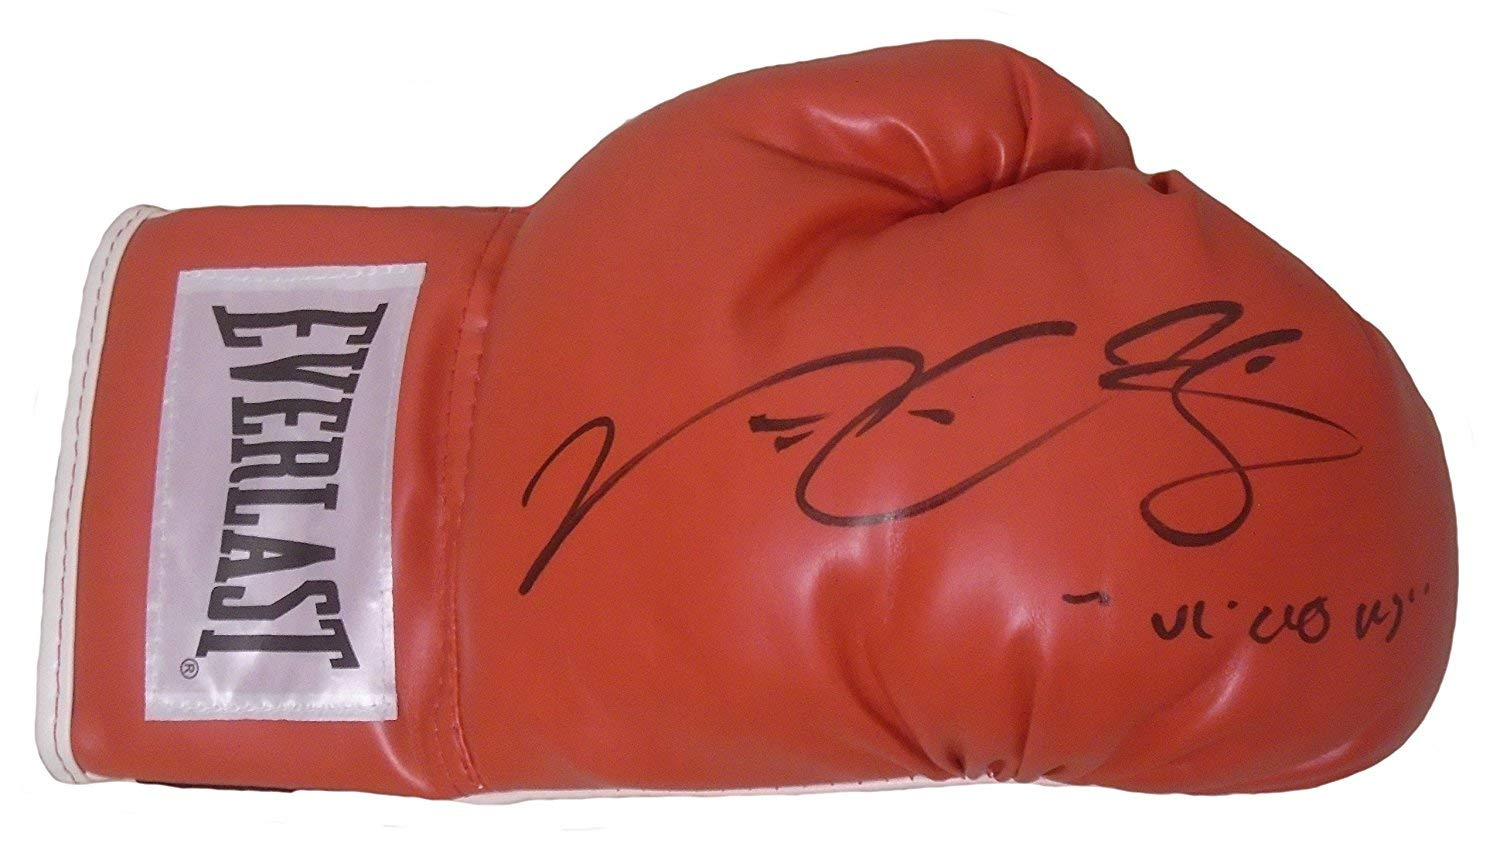 Victor Ortiz Autographed Hand Signed Everlast Red Boxing Glove with Nickname Inscription and Proof Photo of Signing, COA